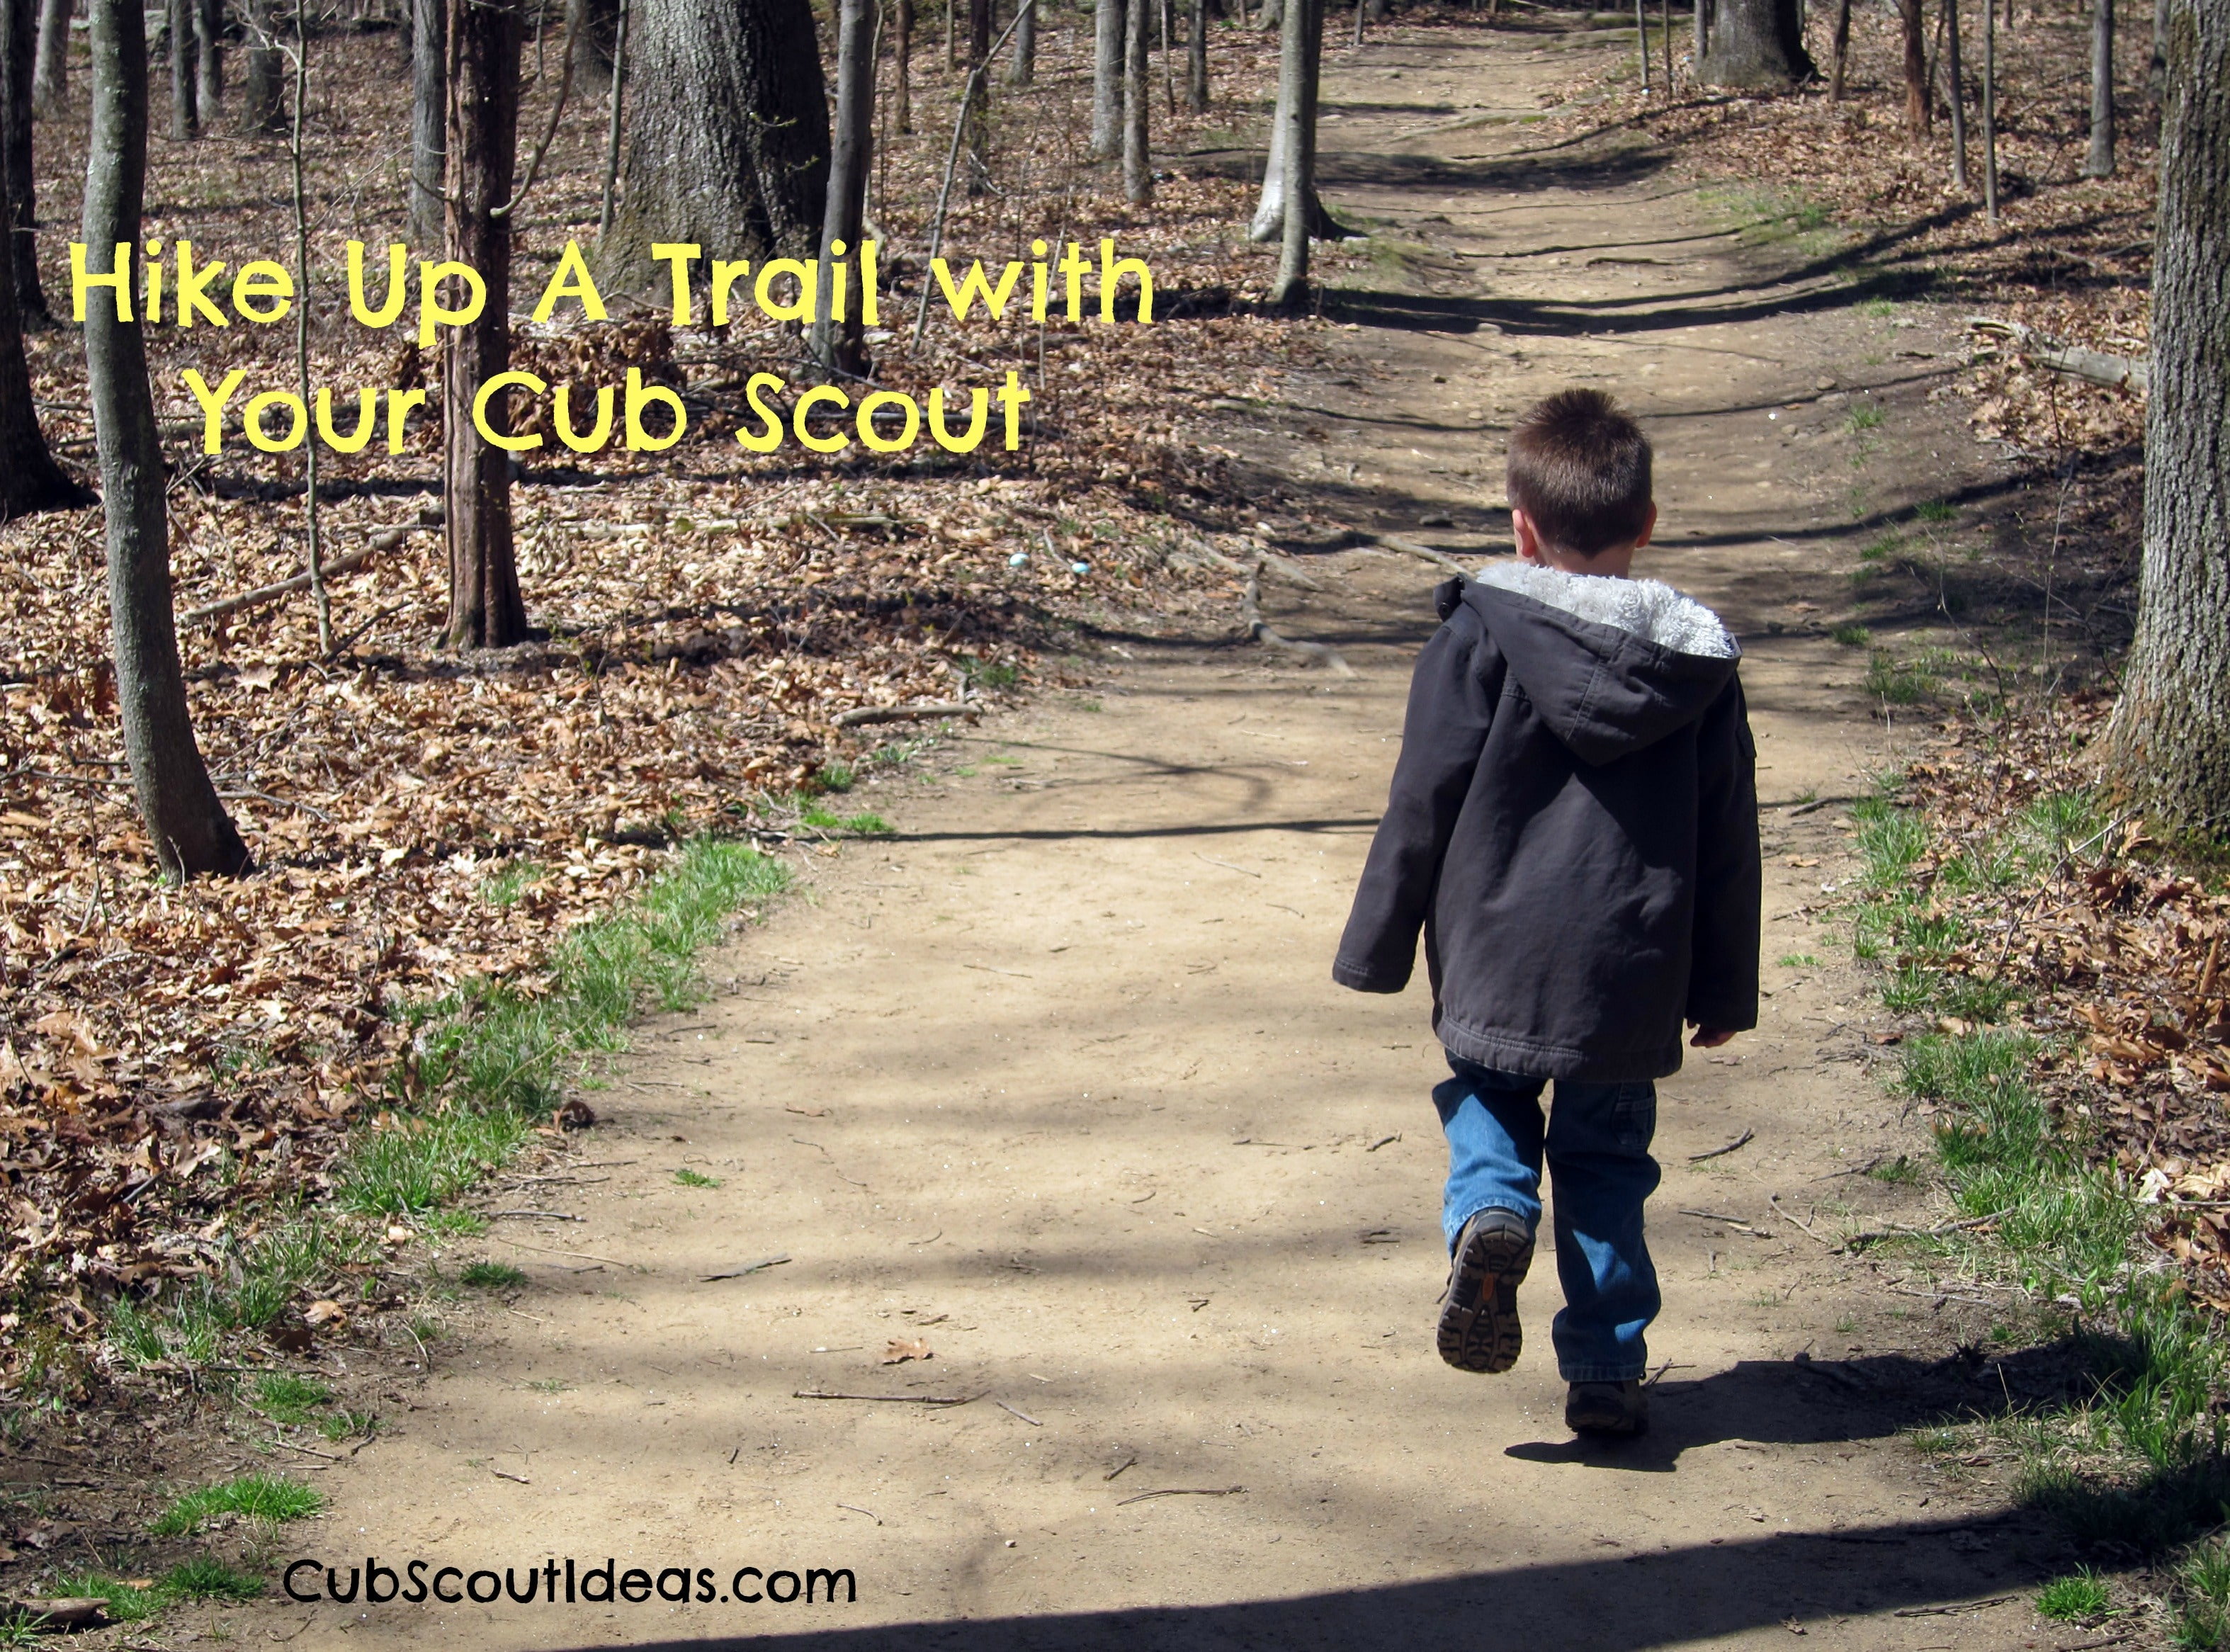 Summer Family Fun Equals Cub Scout Achievement:  Hiking Up A Trail